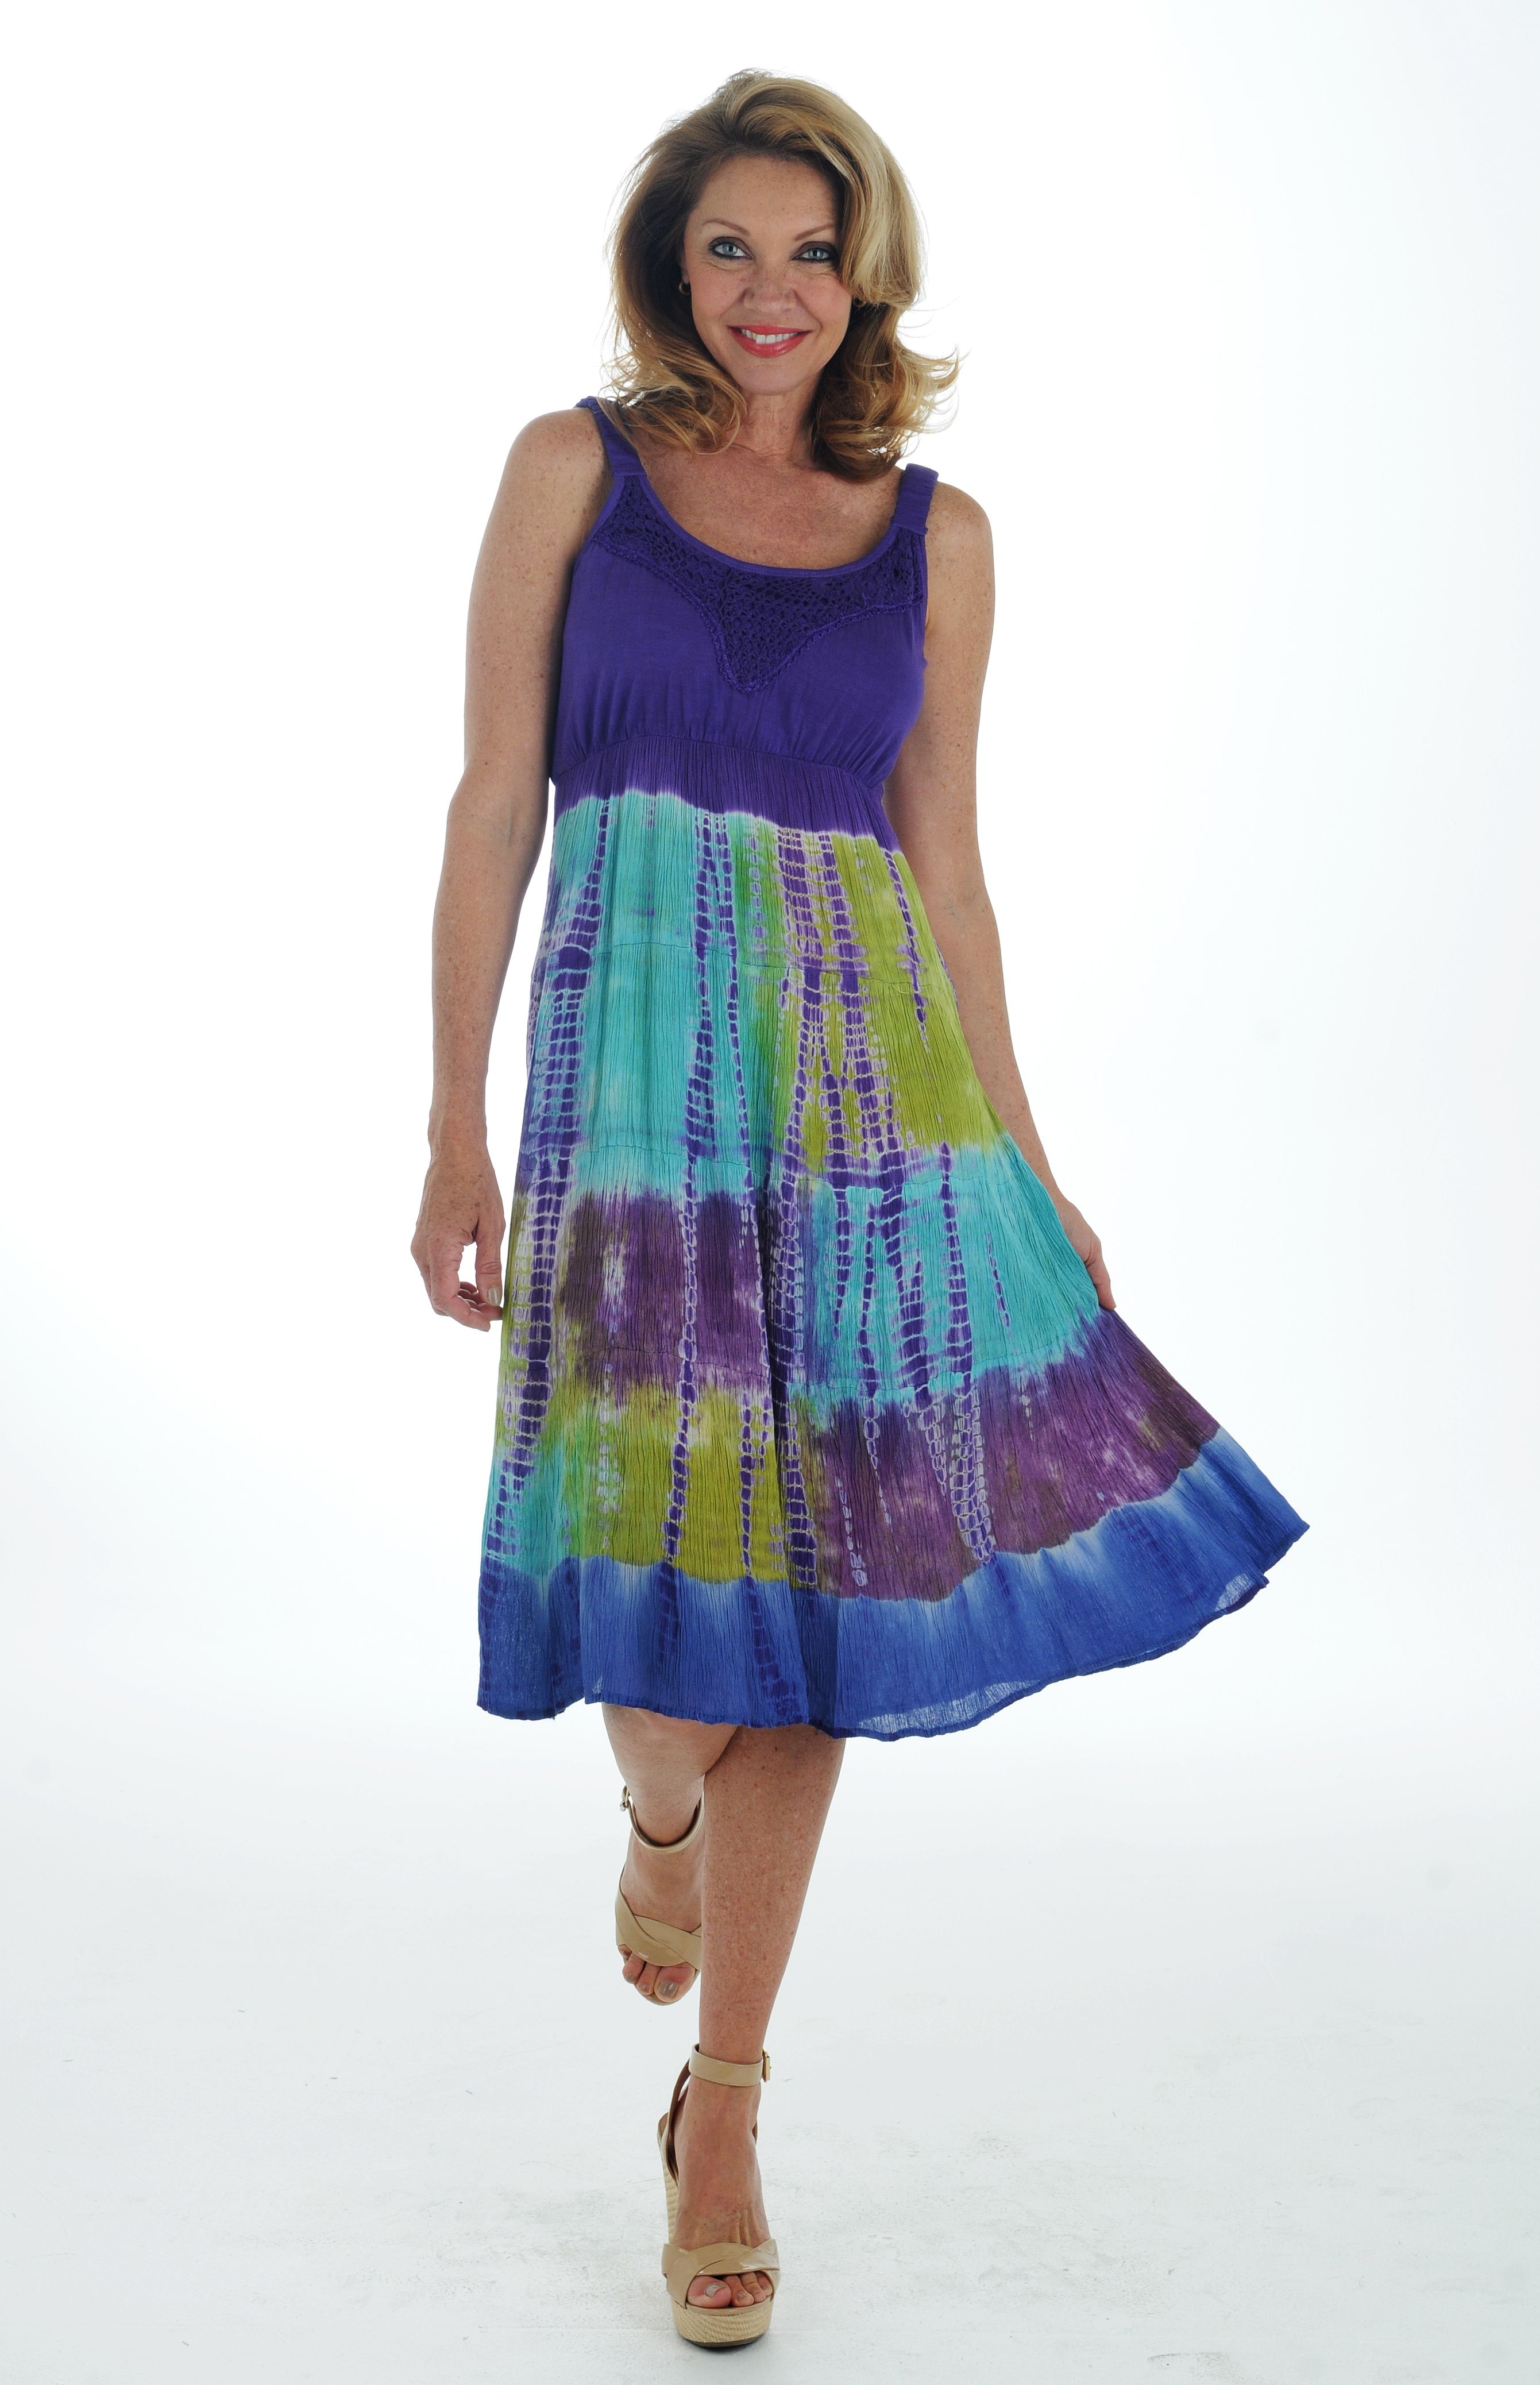 Airy and breathable, both things that make this dress a necessary addition to your summer wardrobe! We love the tie dye effect of the skirt on this Lola P. dress!